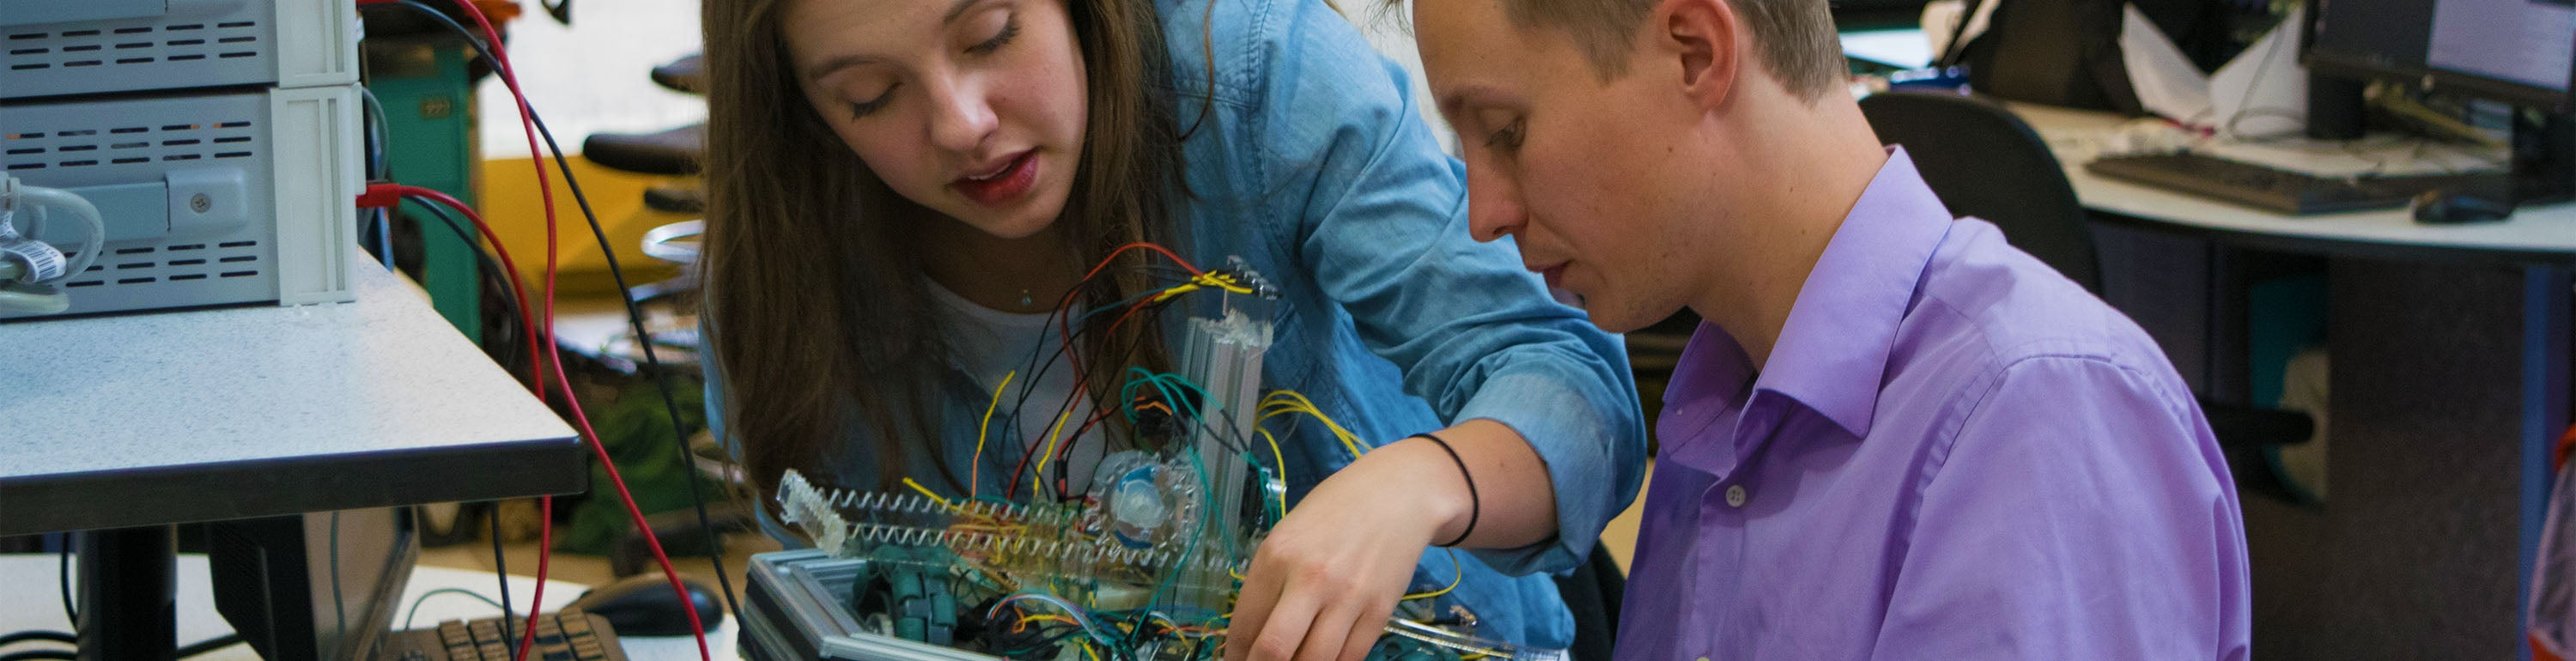 Two students working on a robot